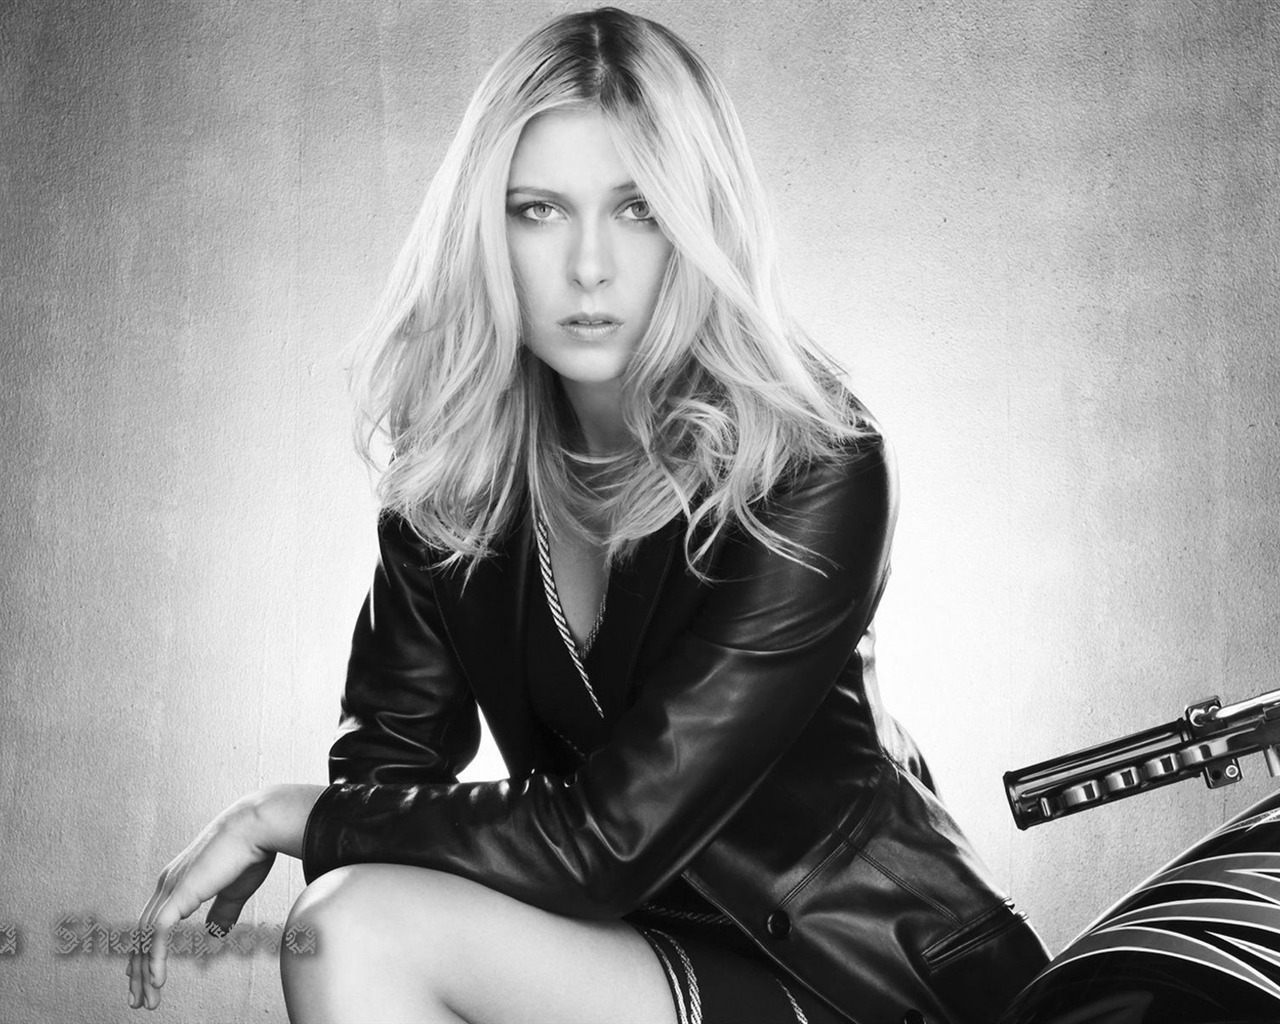 Maria Sharapova #008 - 1280x1024 Wallpapers Pictures Photos Images